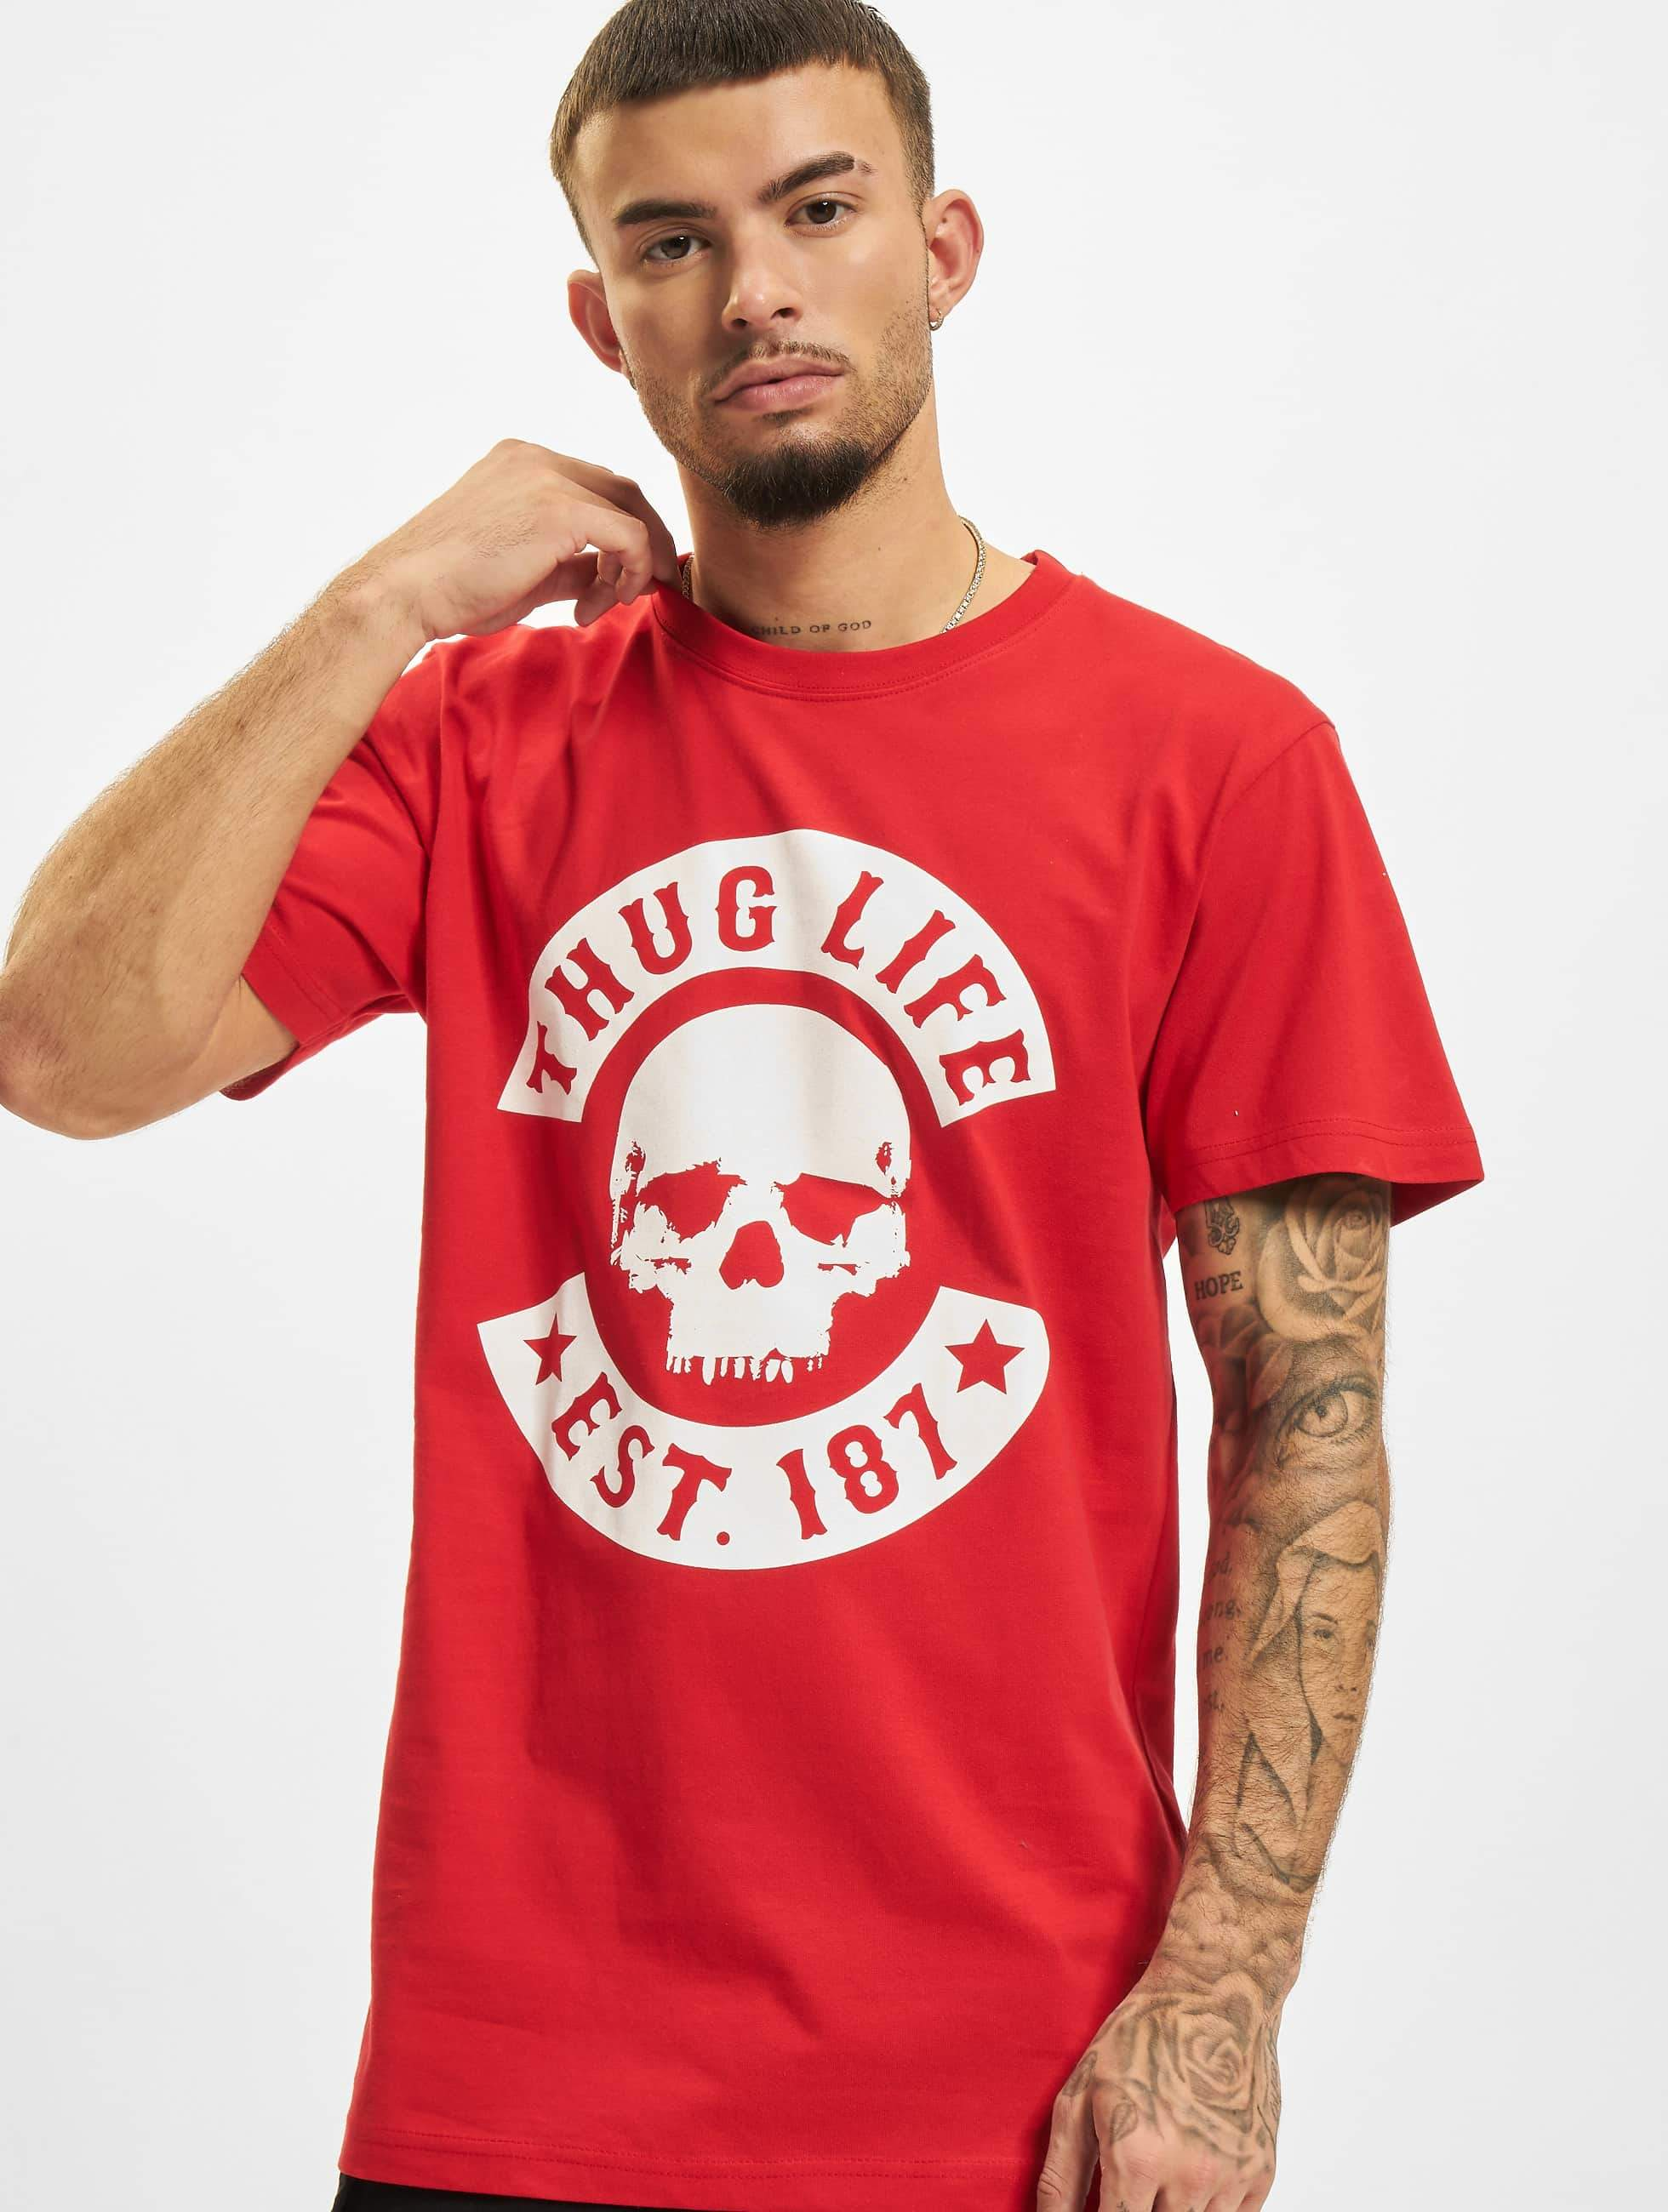 Thug Life / T-Shirt B.Skull in red M